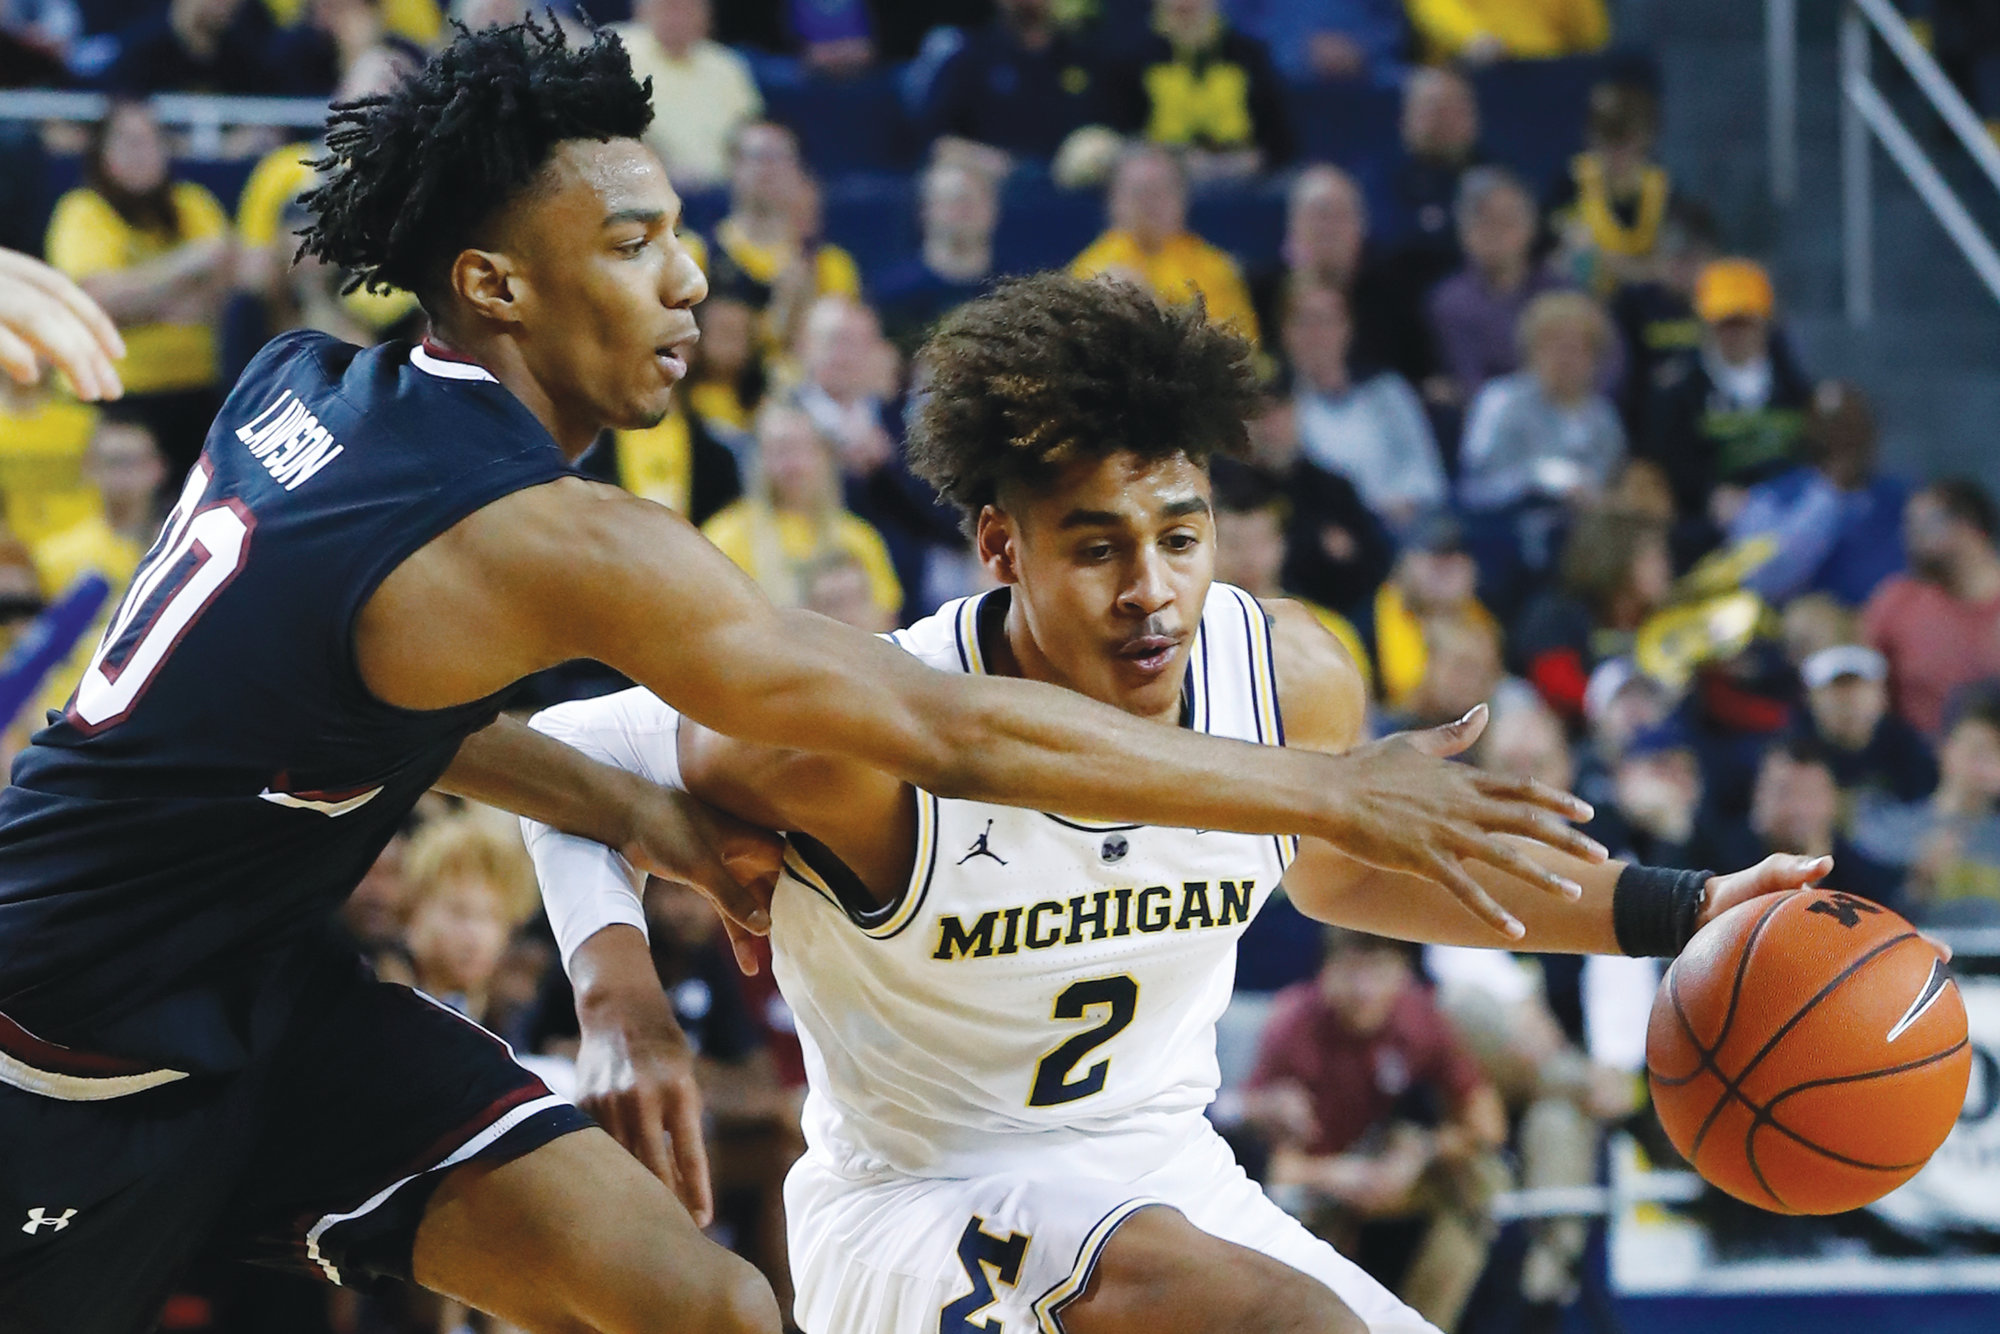 5 Michigan stays unbeaten with 89-78 win over Gamecocks | The Sumter Item